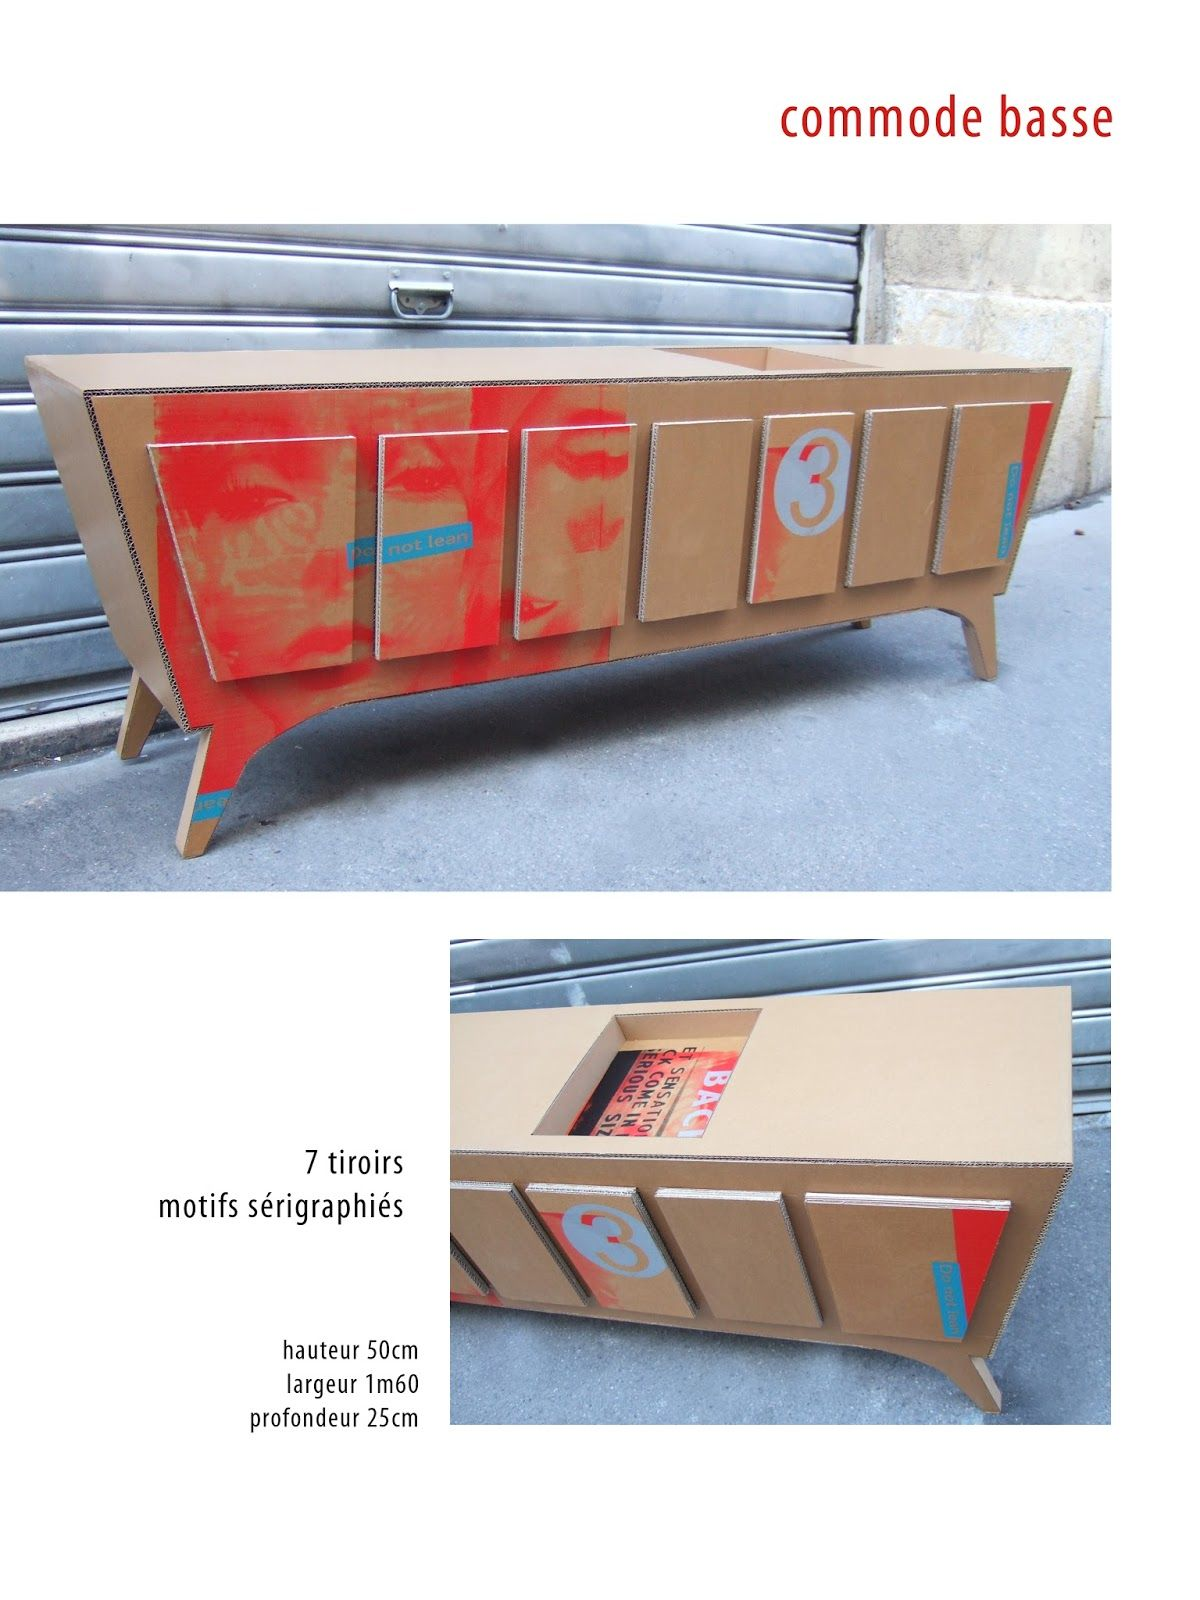 Commode En Carton Commode En Carton Cartóndemisamores Pinterest